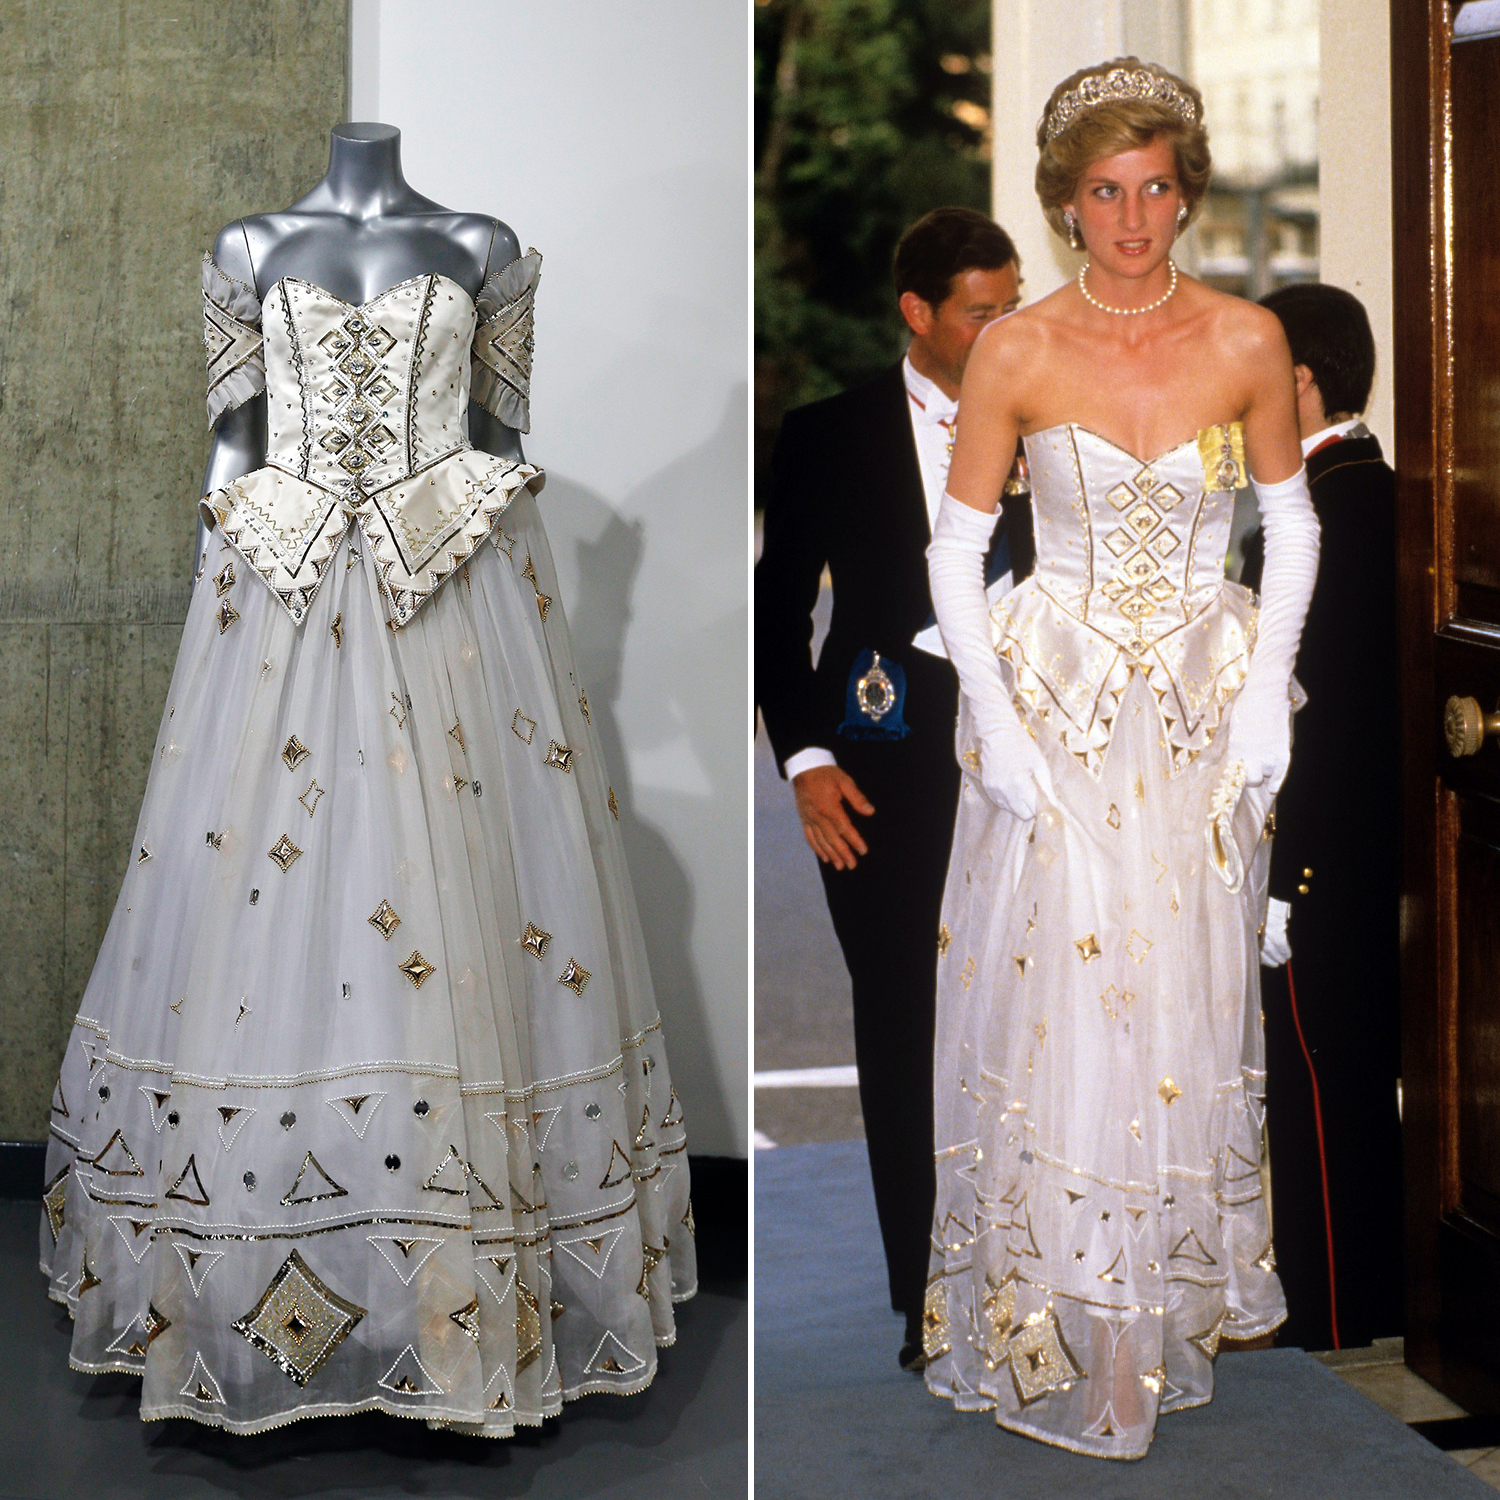 Princess Diana Ball Gown Is Sold For 167 000 At London